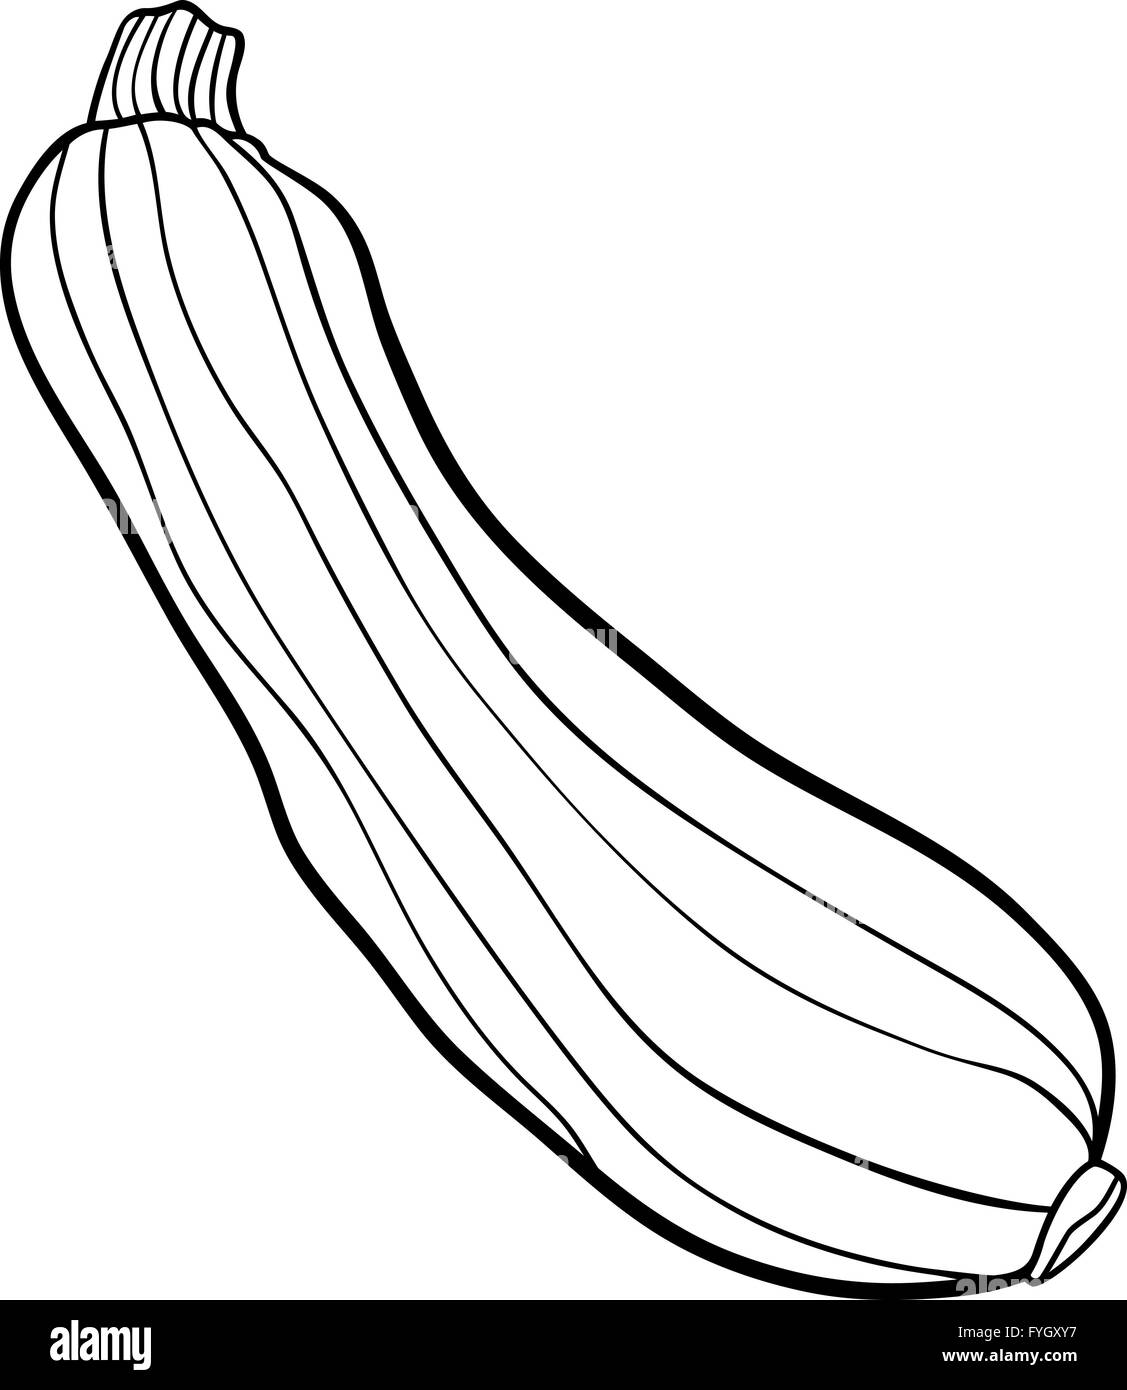 Line Drawing Zucchini : Zucchini vegetable cartoon for coloring book stock photo